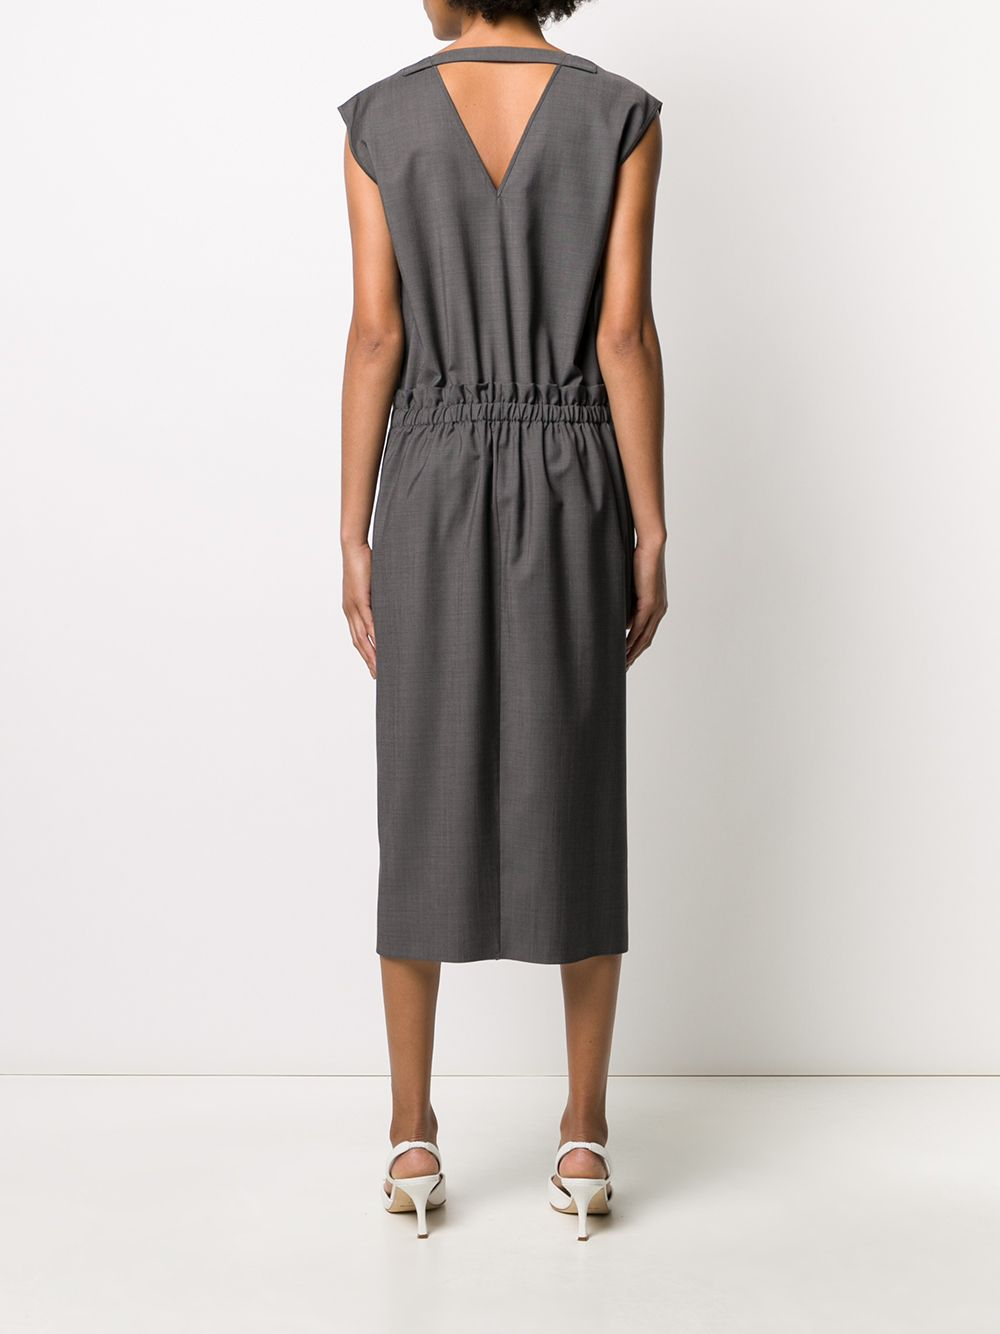 Antracite grey virgin wool elastic waist dress   ROCHAS |  | ROPQ502126-RQ200500035